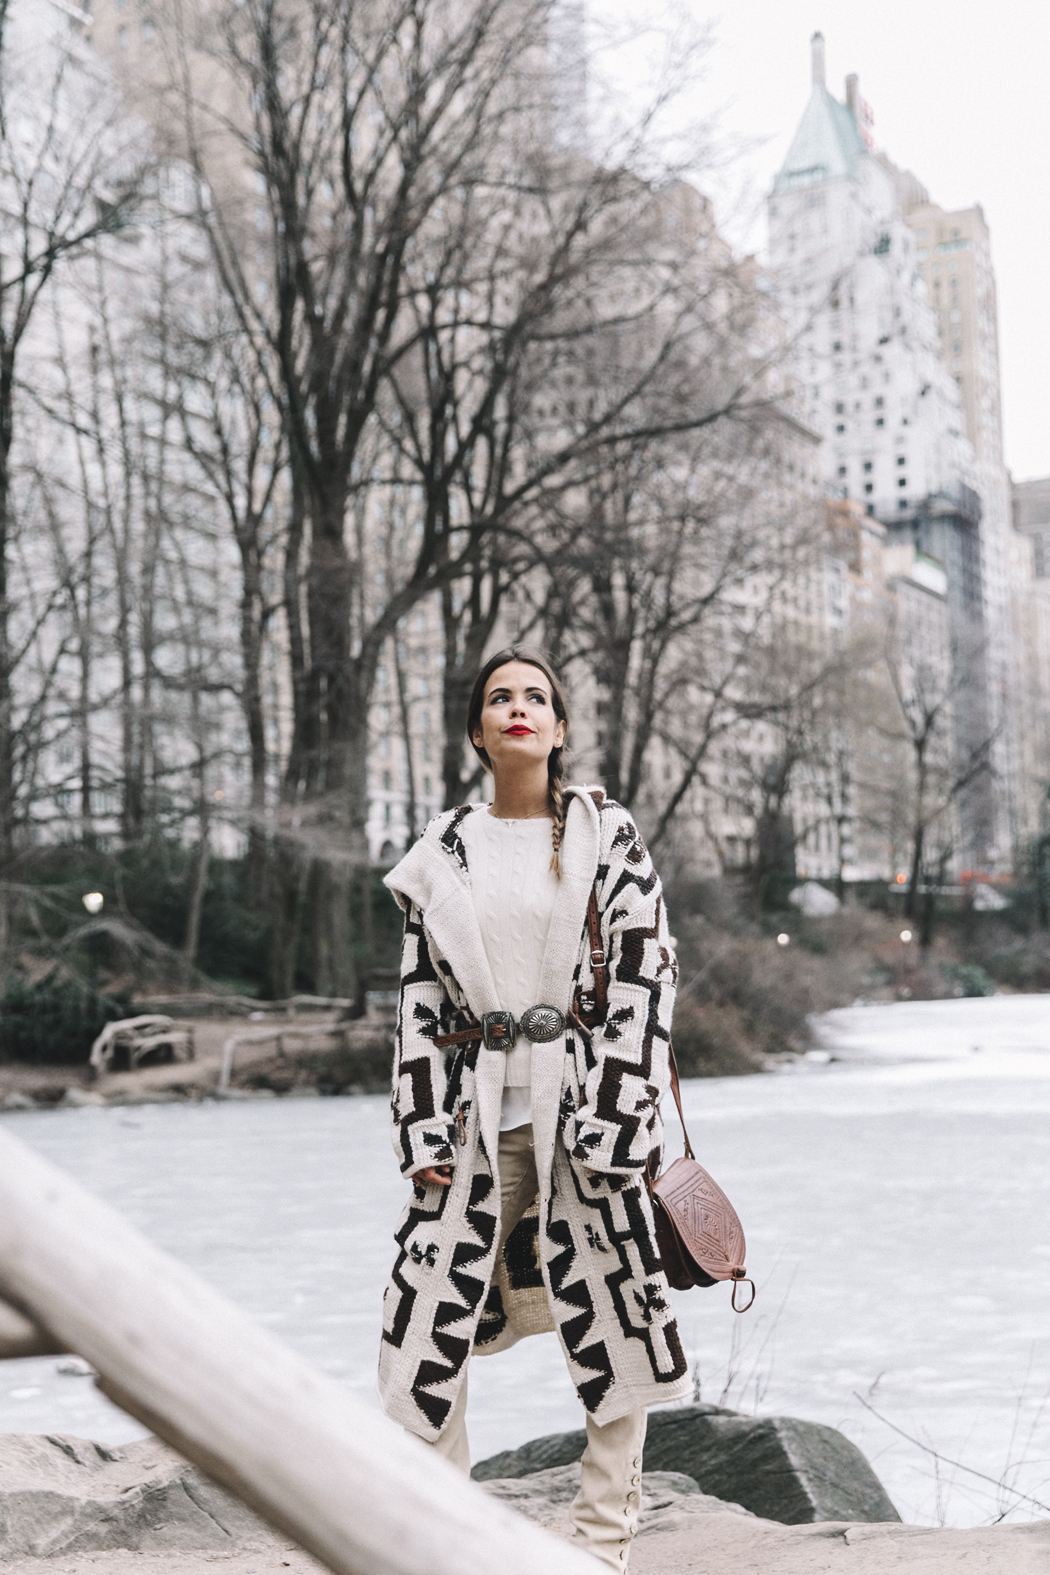 Polo_Ralph_Lauren_Collage_Vintage-Street_Style-NYFW-New_York_Fashion_Week-Knit_Jacket-Cream_Trousers-Boho-Winter_White-